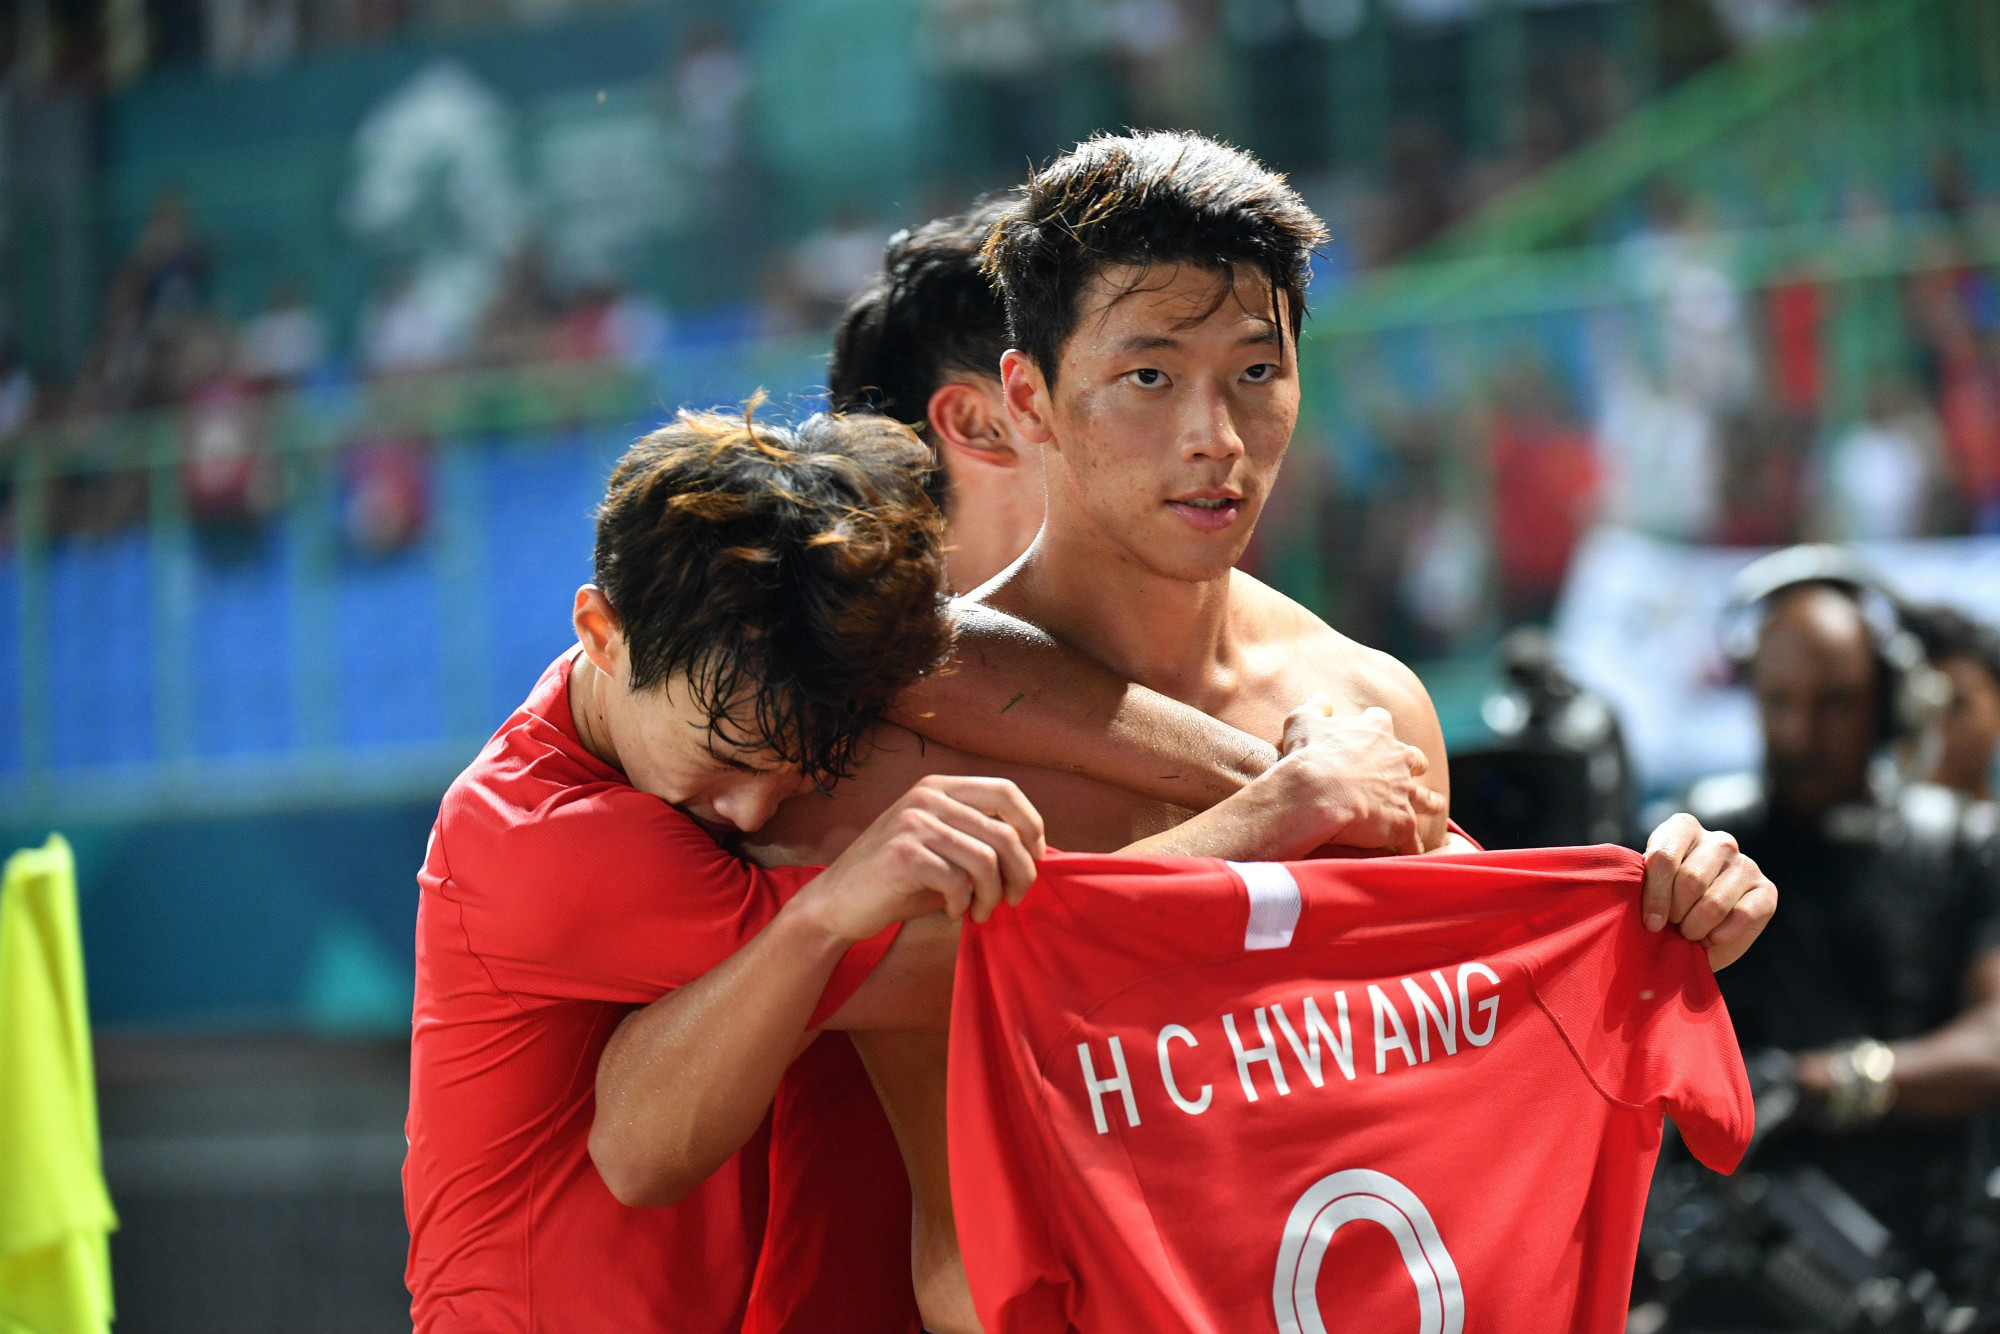 Hwang celebrates at the Asian Games